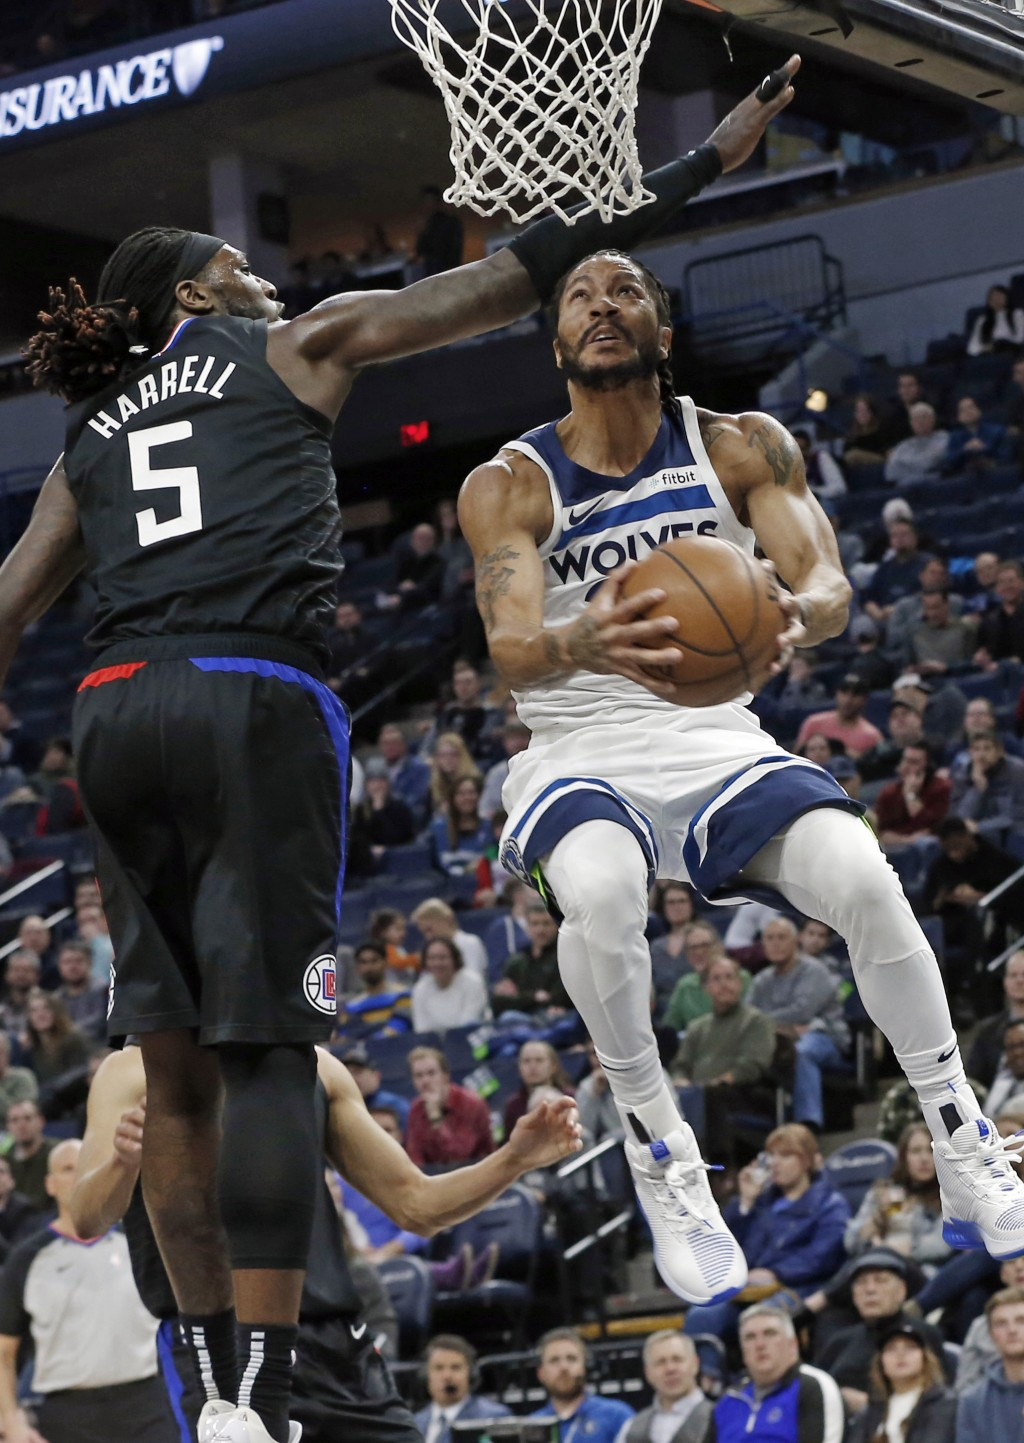 Minnesota Timberwolves' Derrick Rose, right, eyes the basket on a layup as Los Angeles Clippers' Montrezl Harrell defends in the first half of an NBA